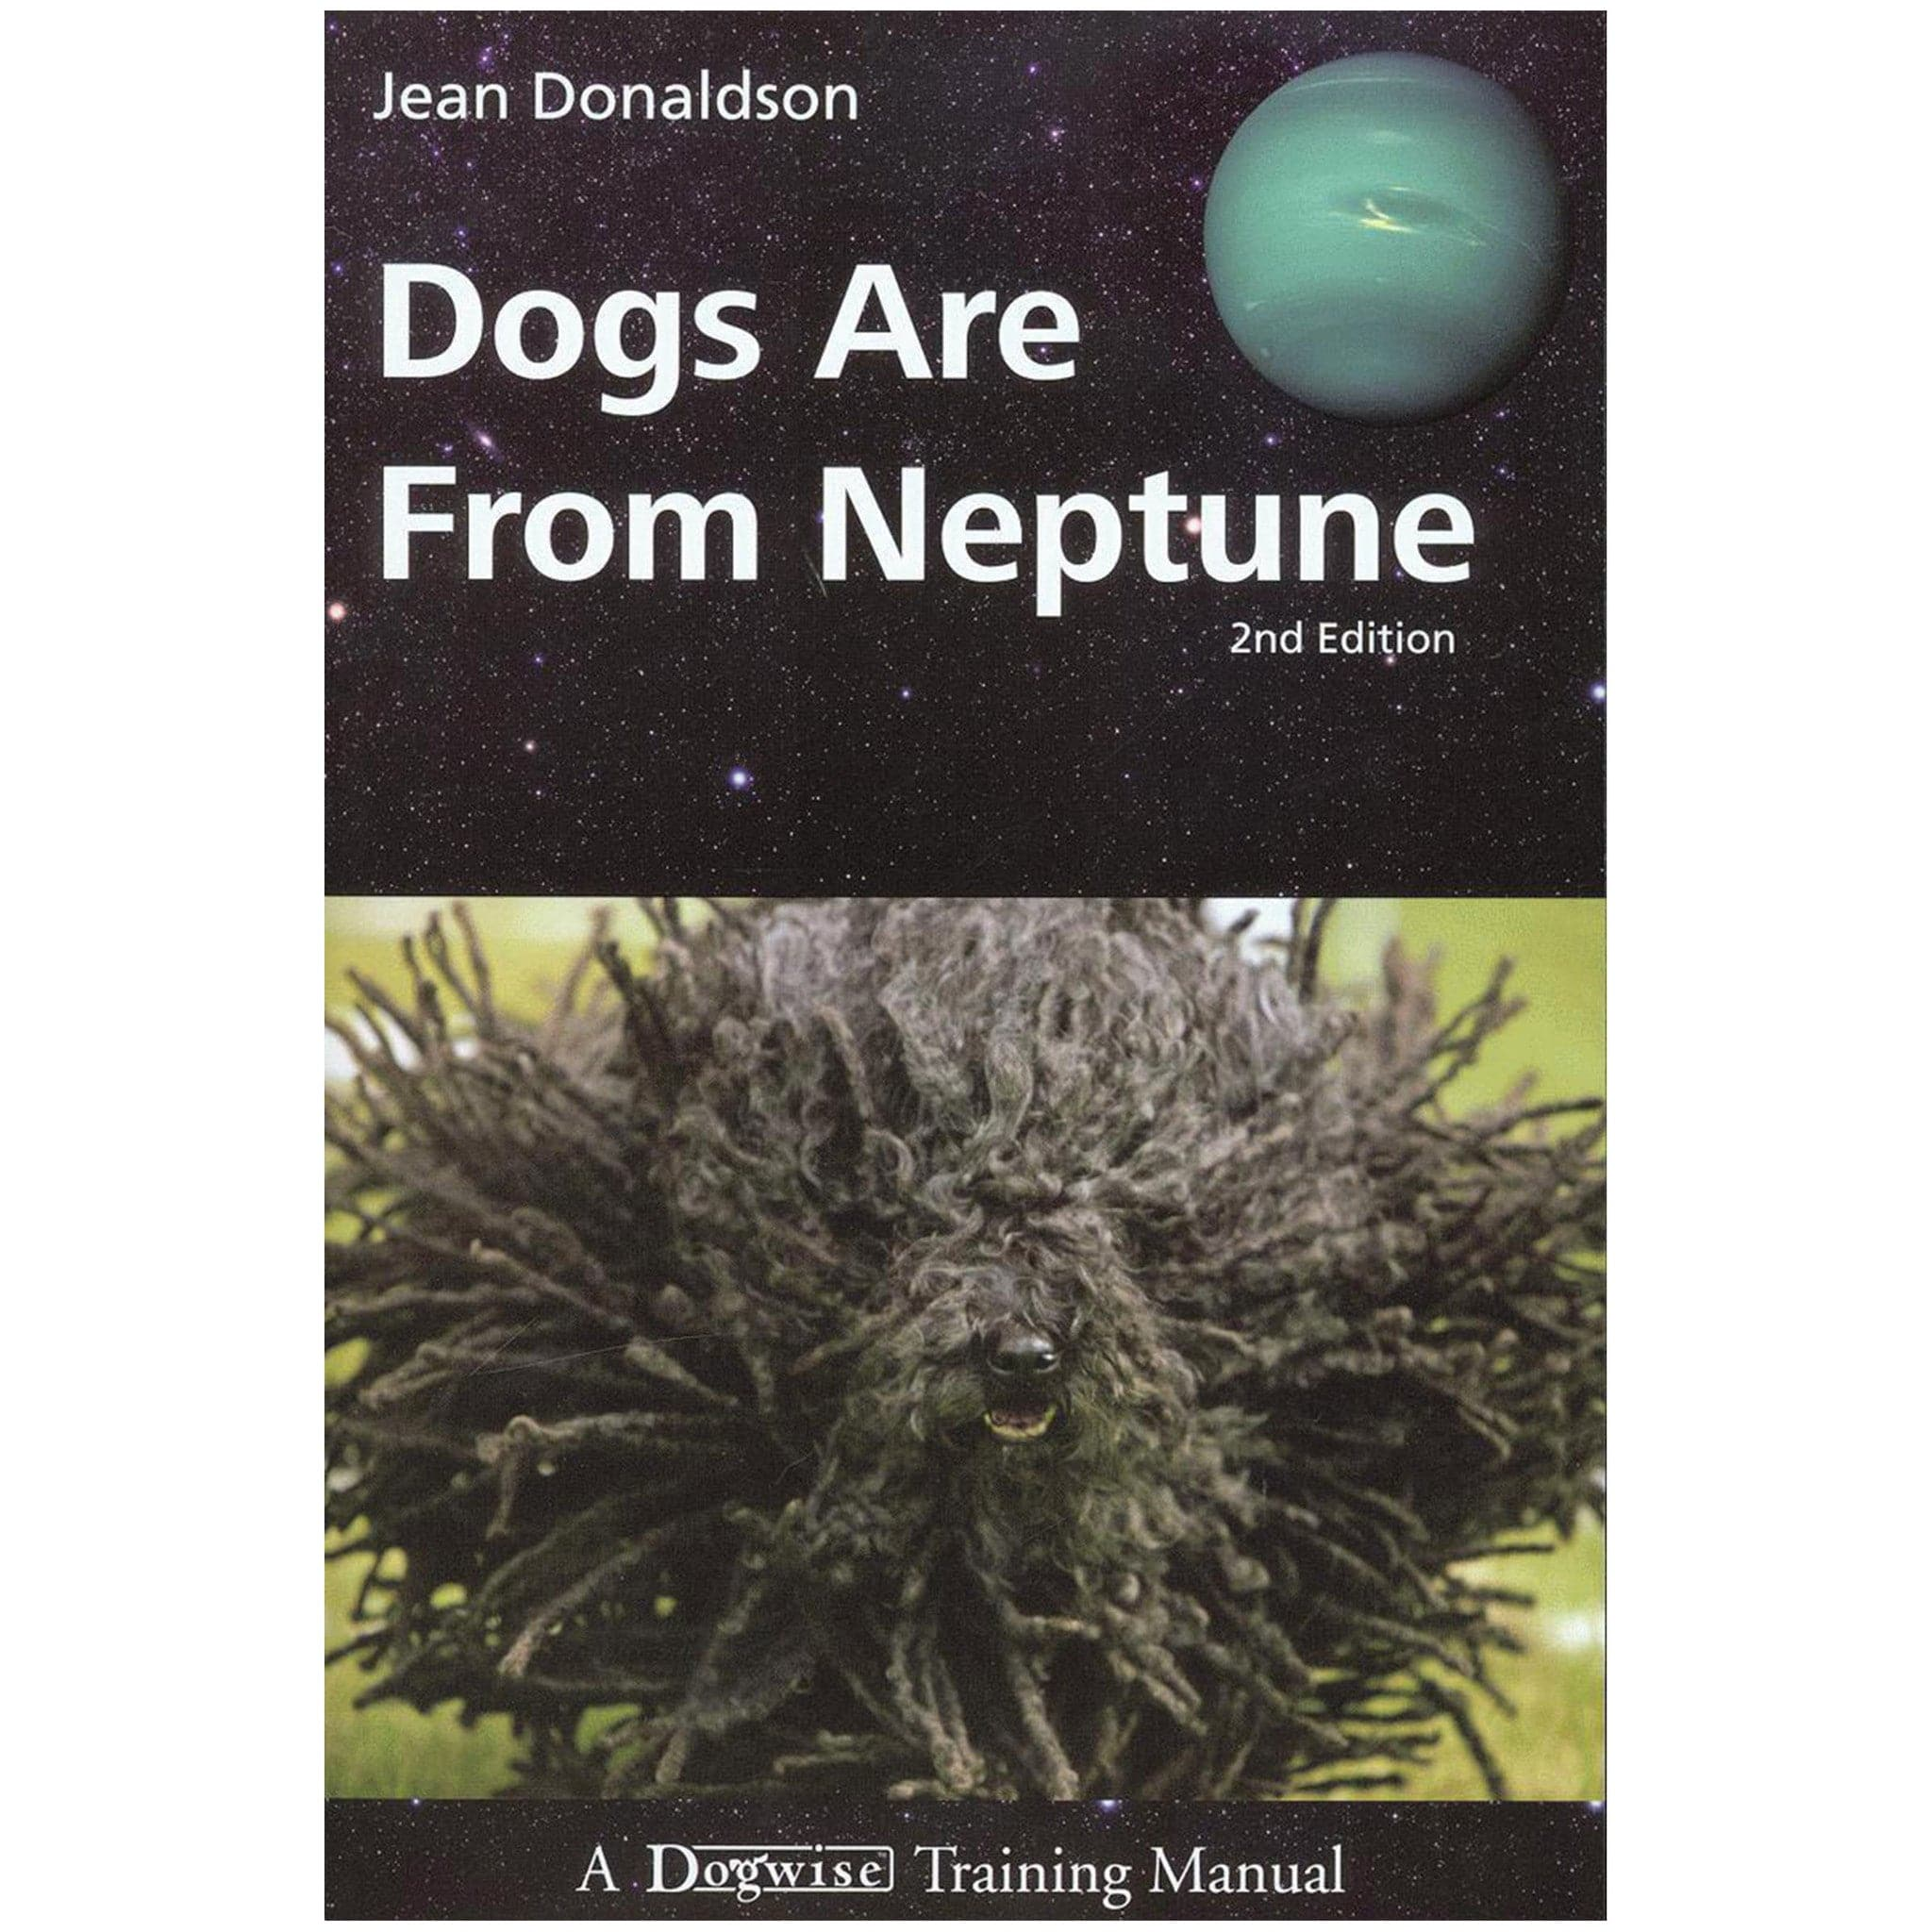 Dogs are From Neptune 2nd Edition - Kindle